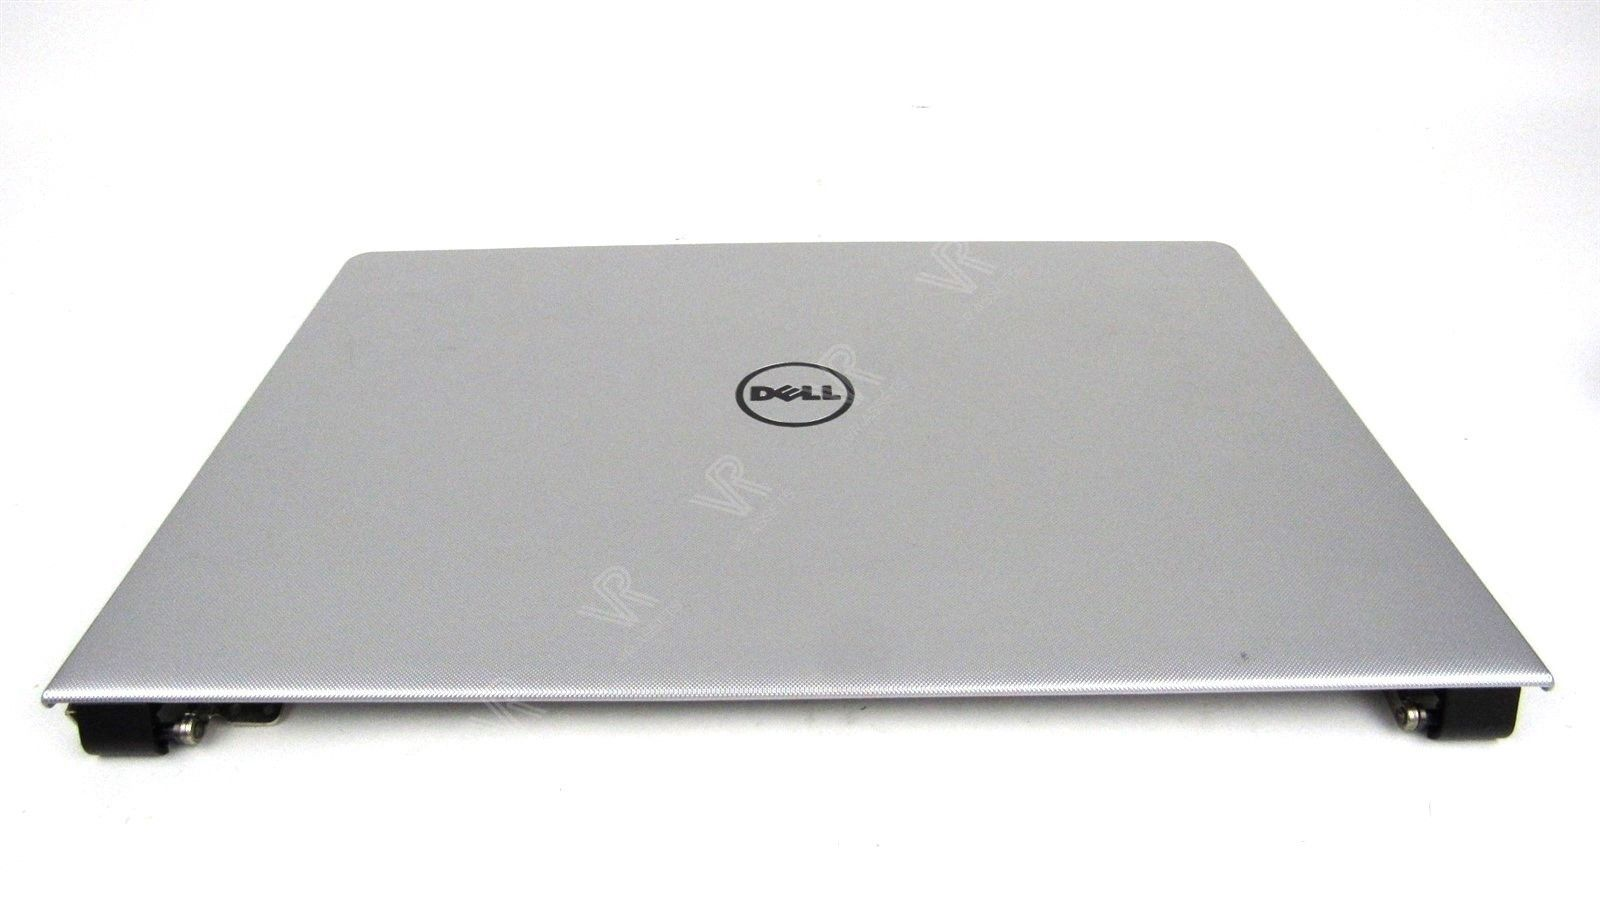 Dell Inspiron 15 5558 15.6/'/' LCD Back Cover Lid Silver with Hinges 7NNP1 07NNP1